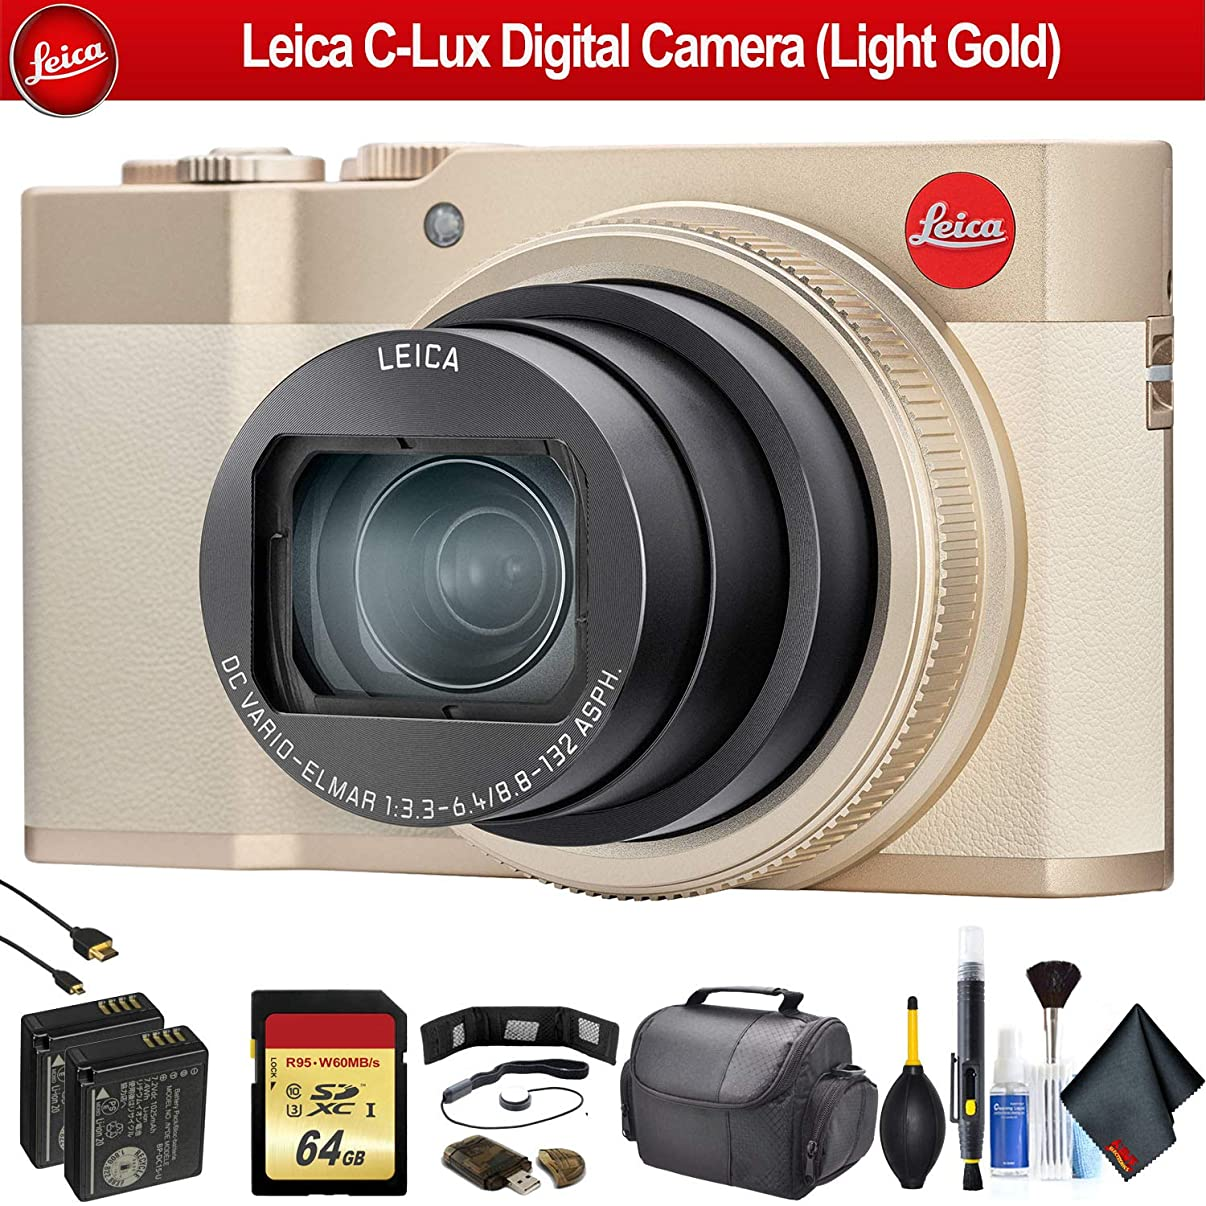 Leica C-Lux Digital Camera (Light Gold) 19126 - Advanced Bundle